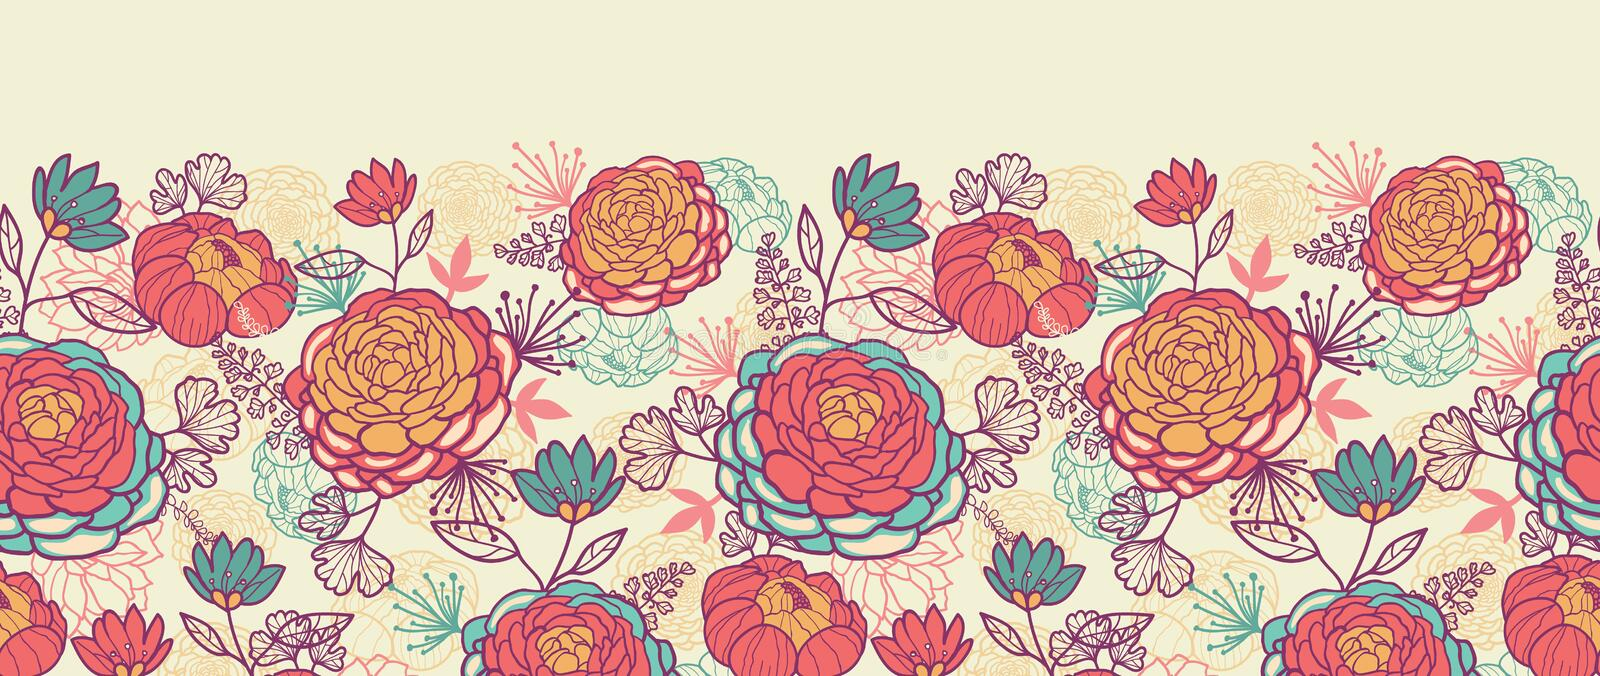 Download Peony Flowers And Leaves Horizontal Seamless Stock Vector - Illustration: 30992561